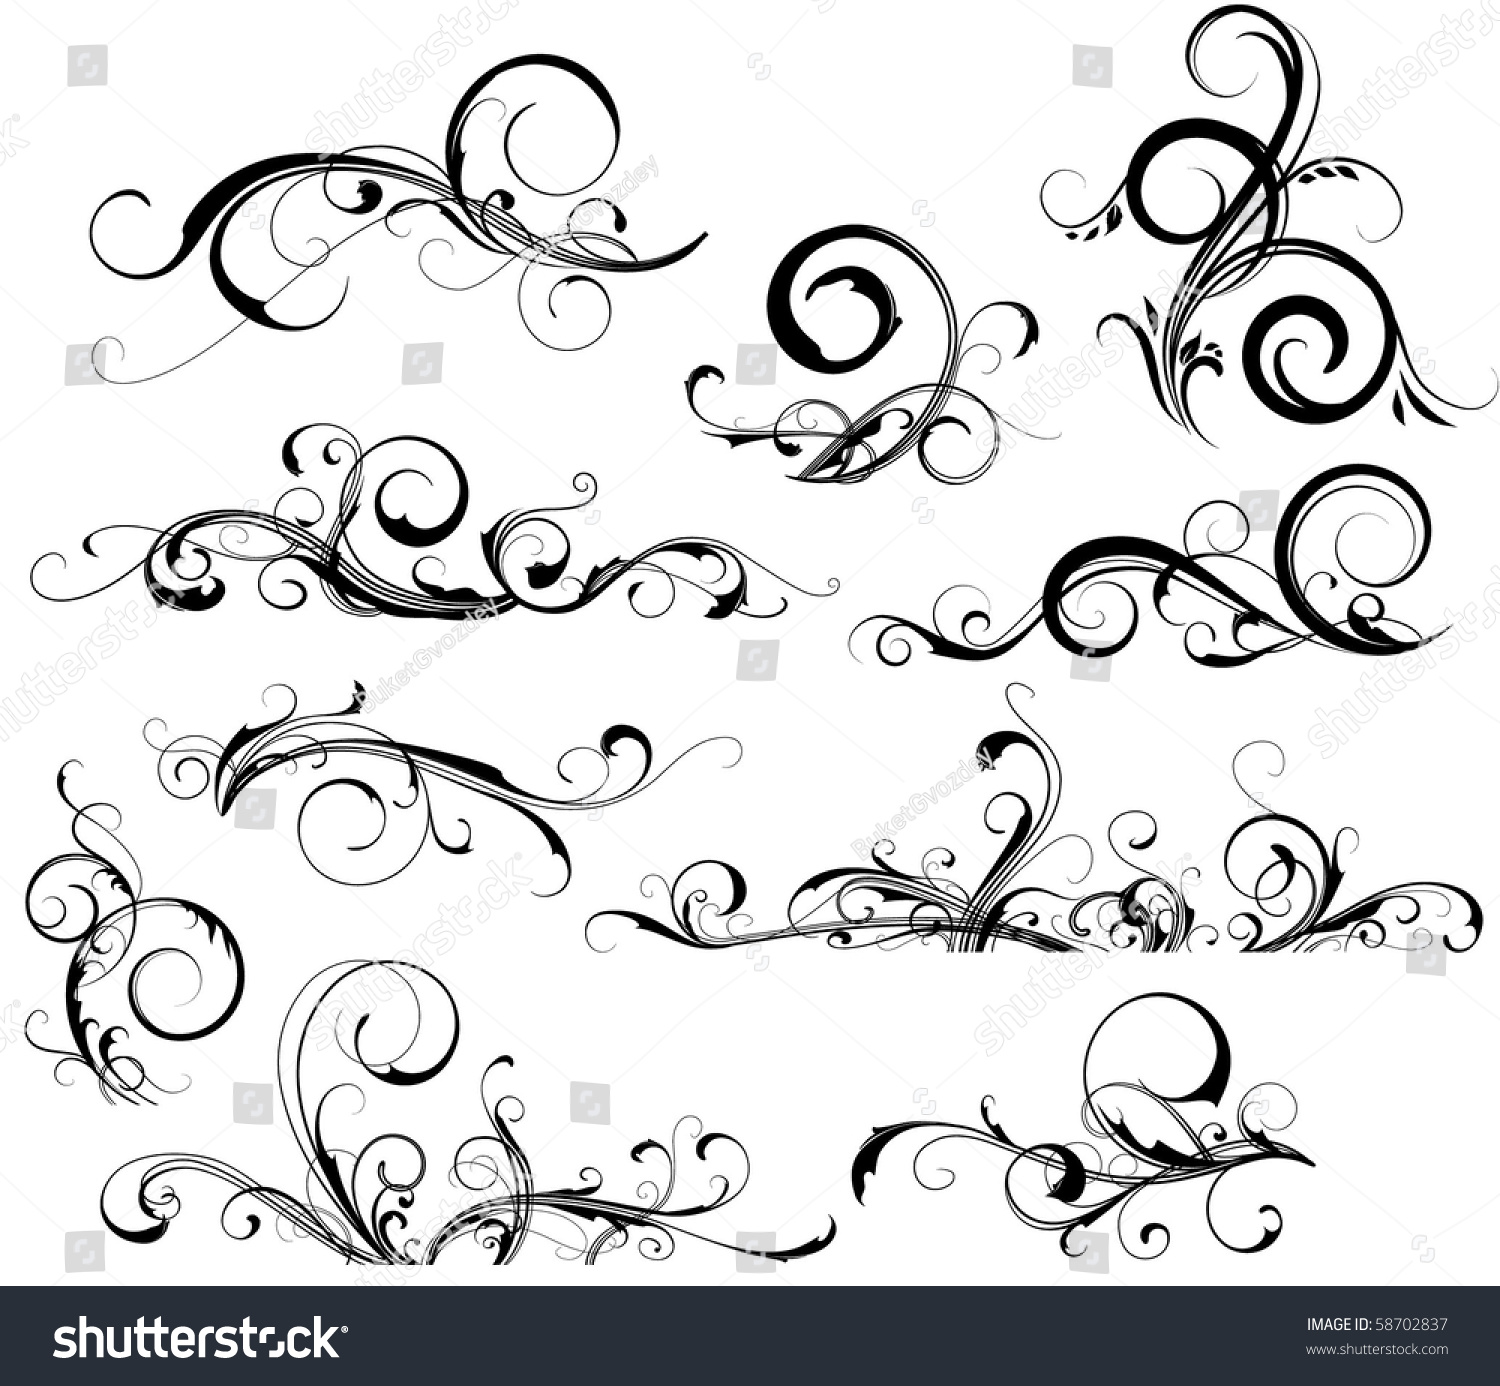 Collection Design Elements Stock Vector 58702837 - Shutterstock